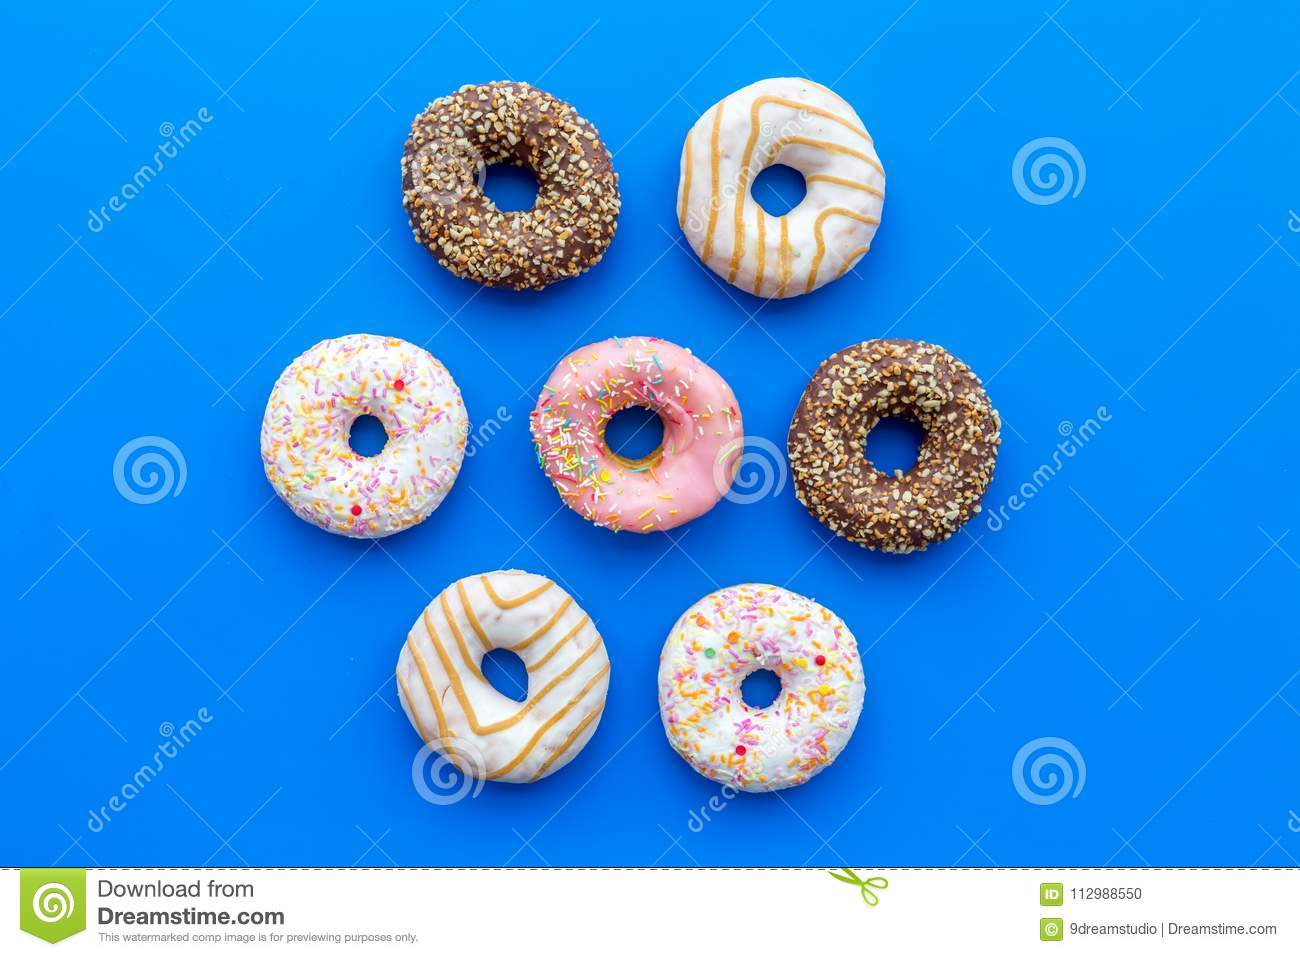 Sweet tasty snack. Glazed donut on blue background top view copy space